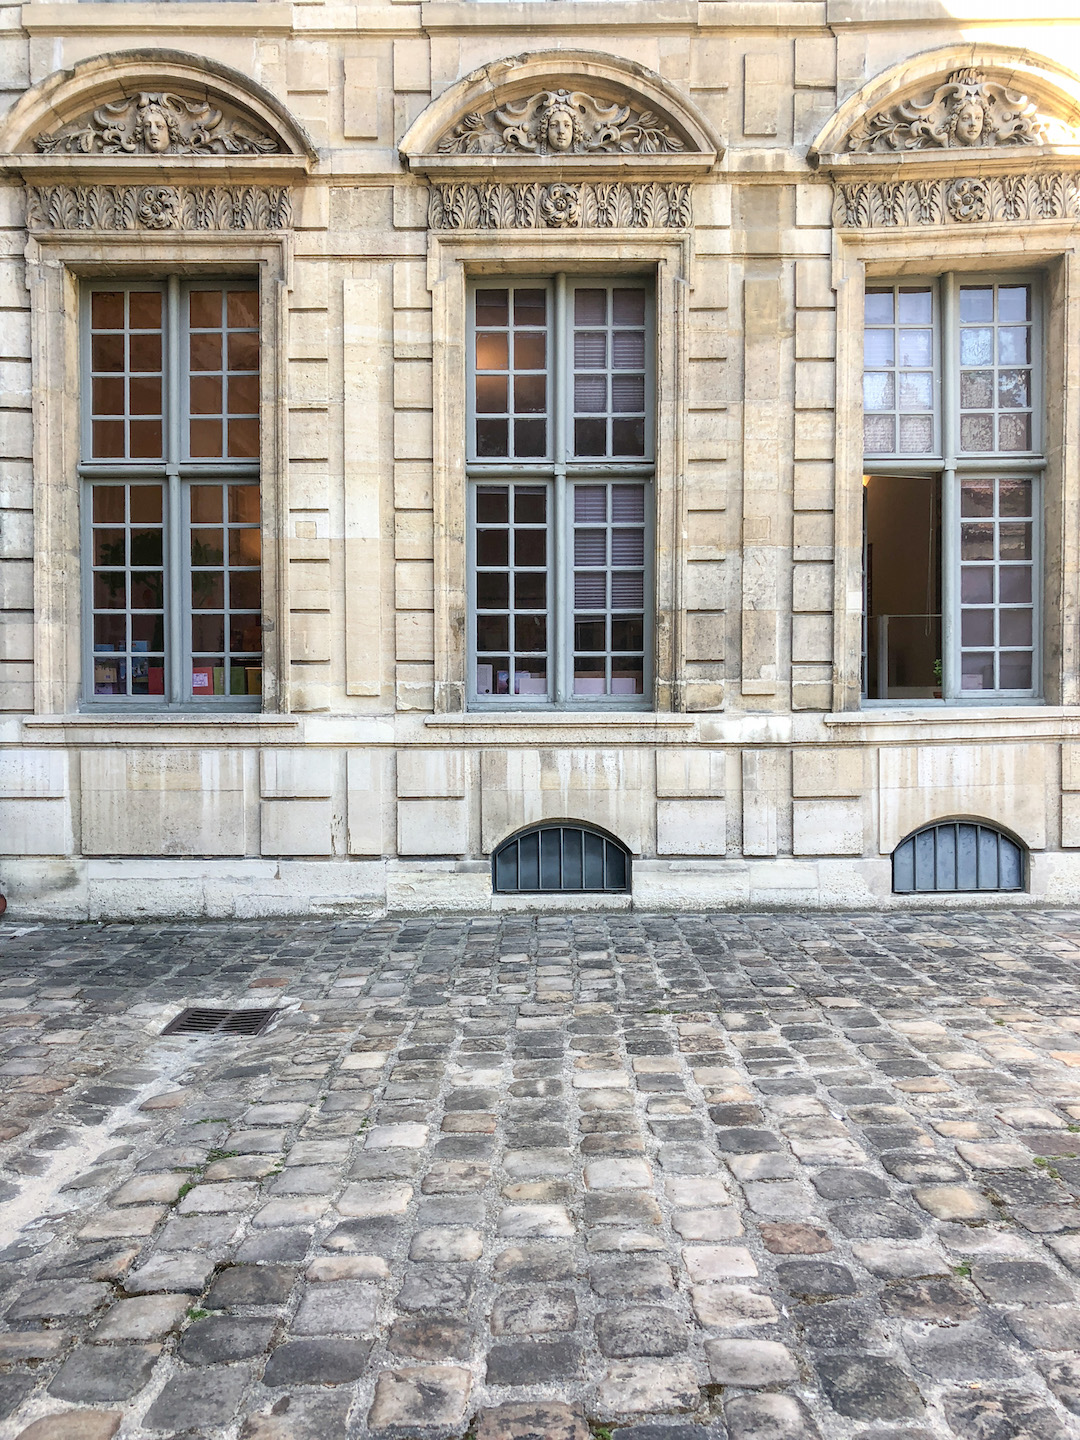 Hotel de Sully, Le Marais Paris